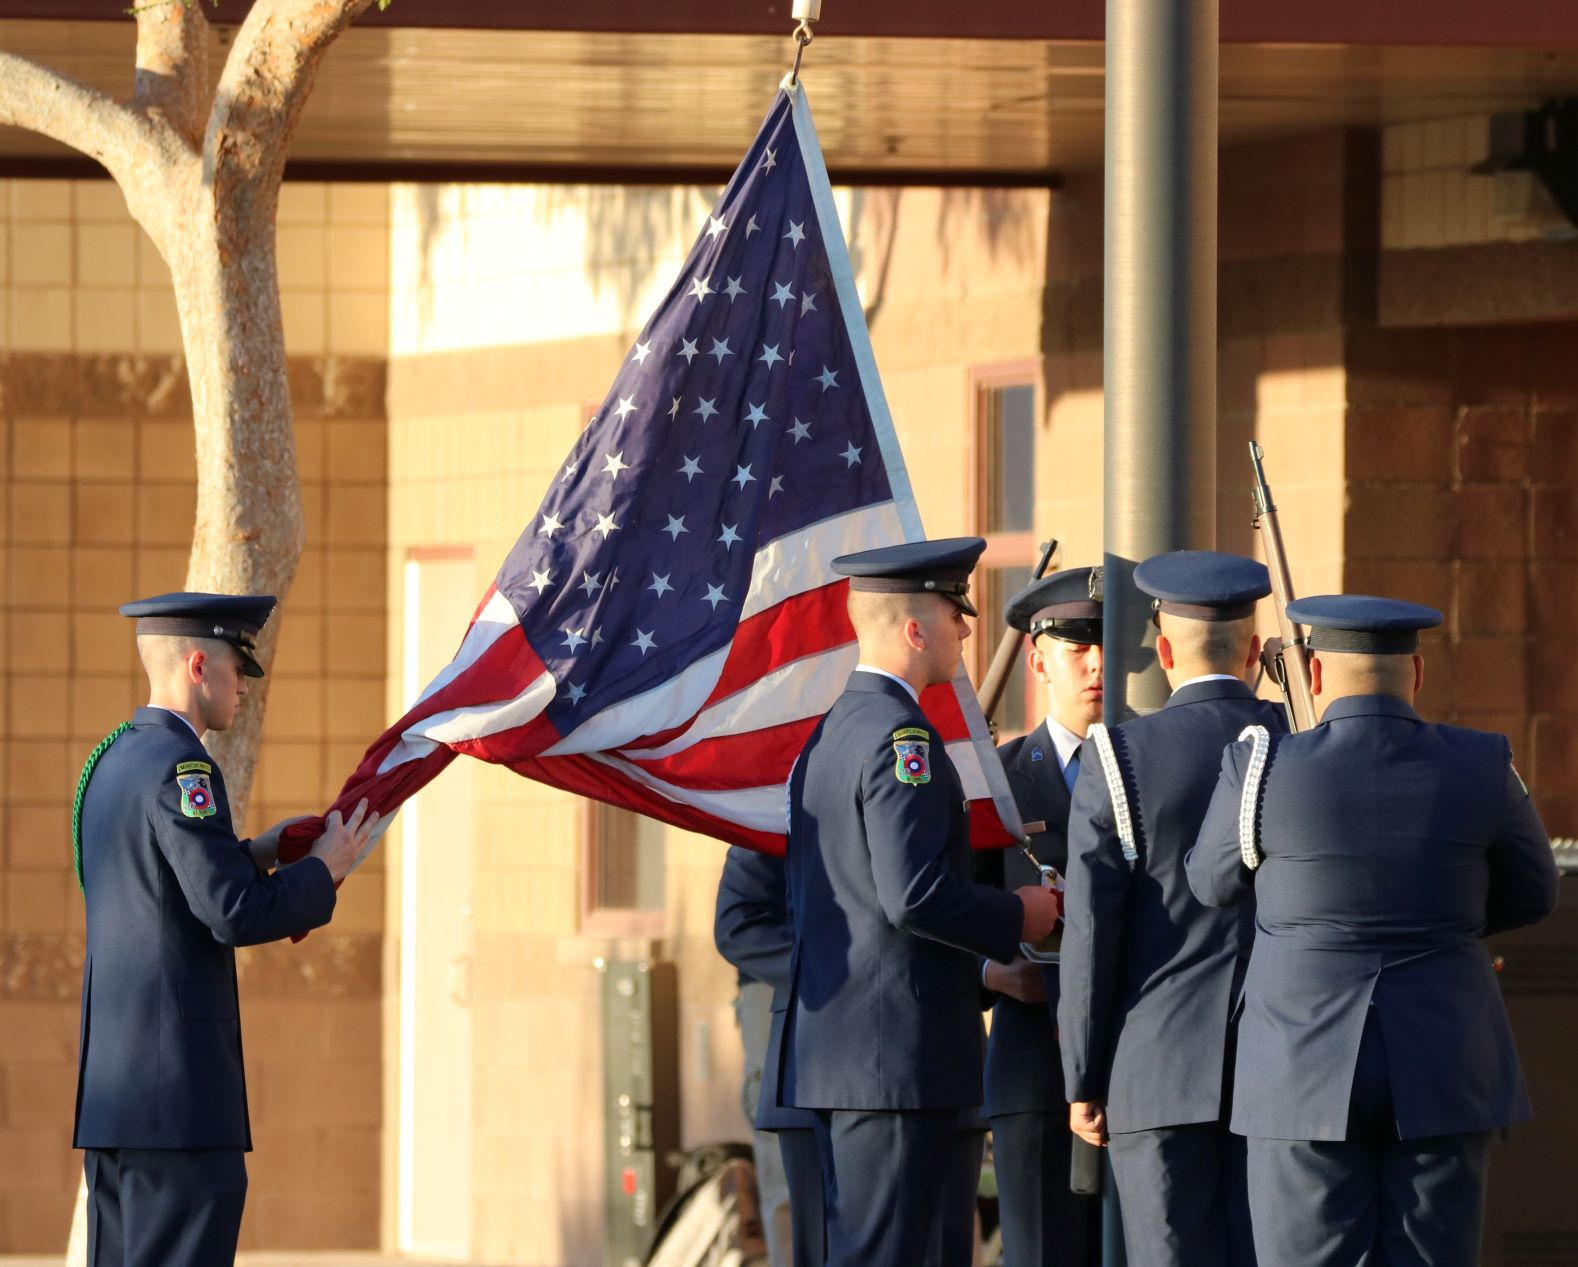 AFJROTC: Not for Self, but for Country -- 2019